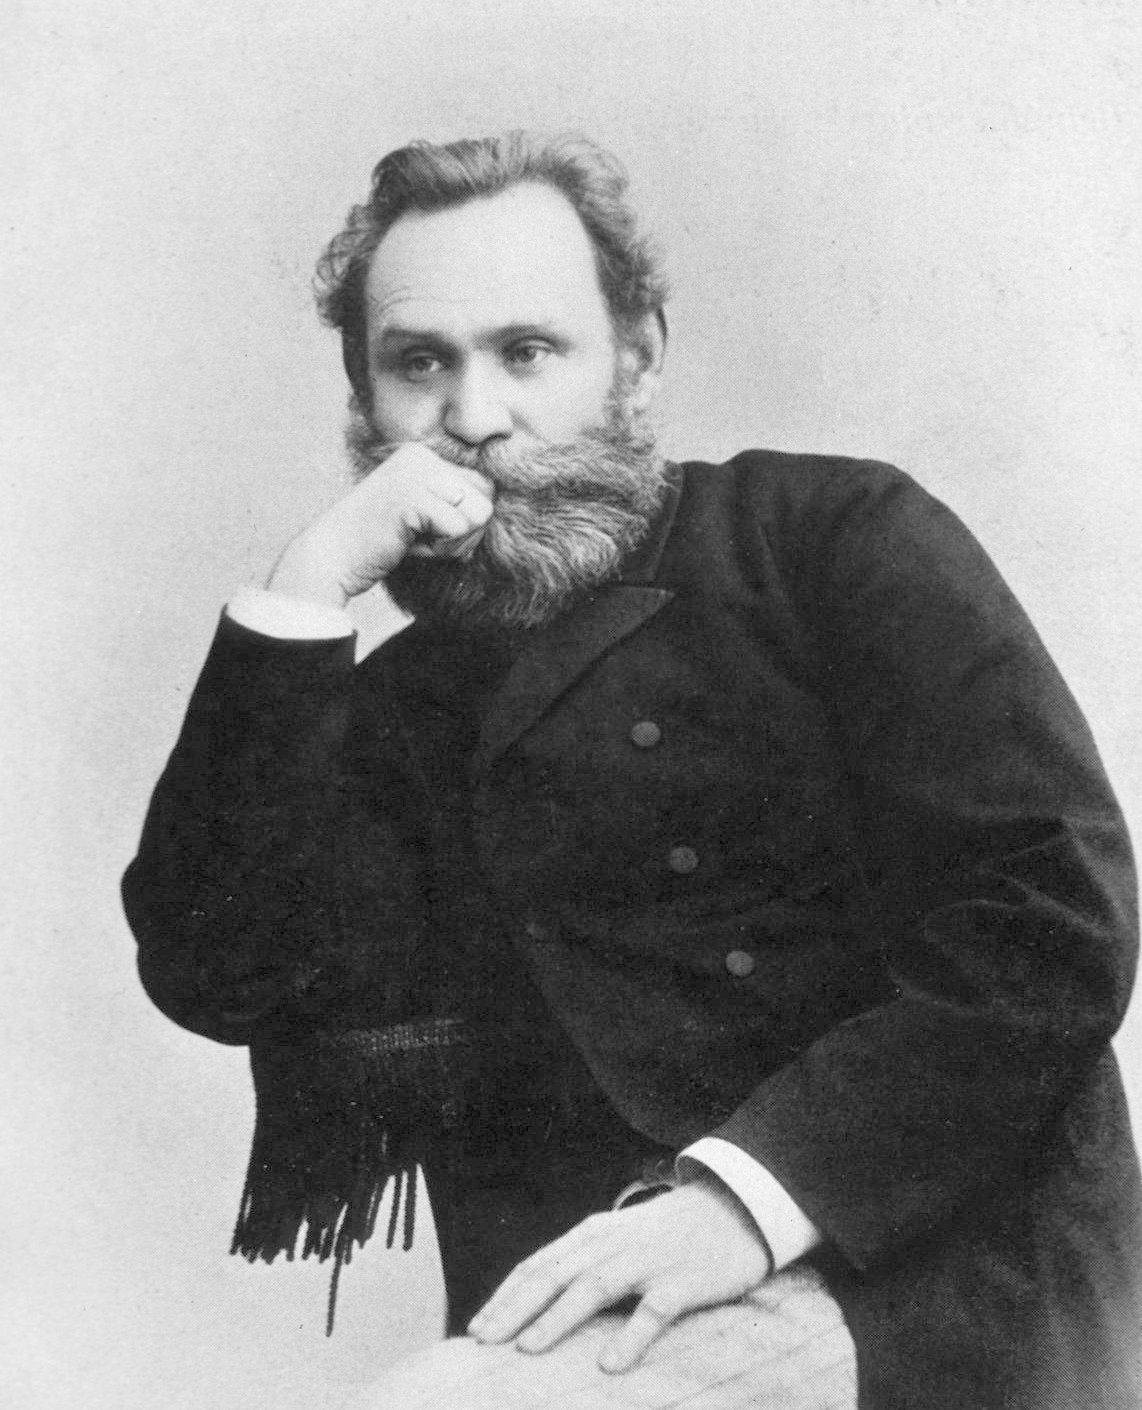 the life and times of ivan petrovich pavlov Ivan pavlov hardcover this is this book is also a traditional life and times biography that weaves pavlov into some 100 years of russian history-particularly.